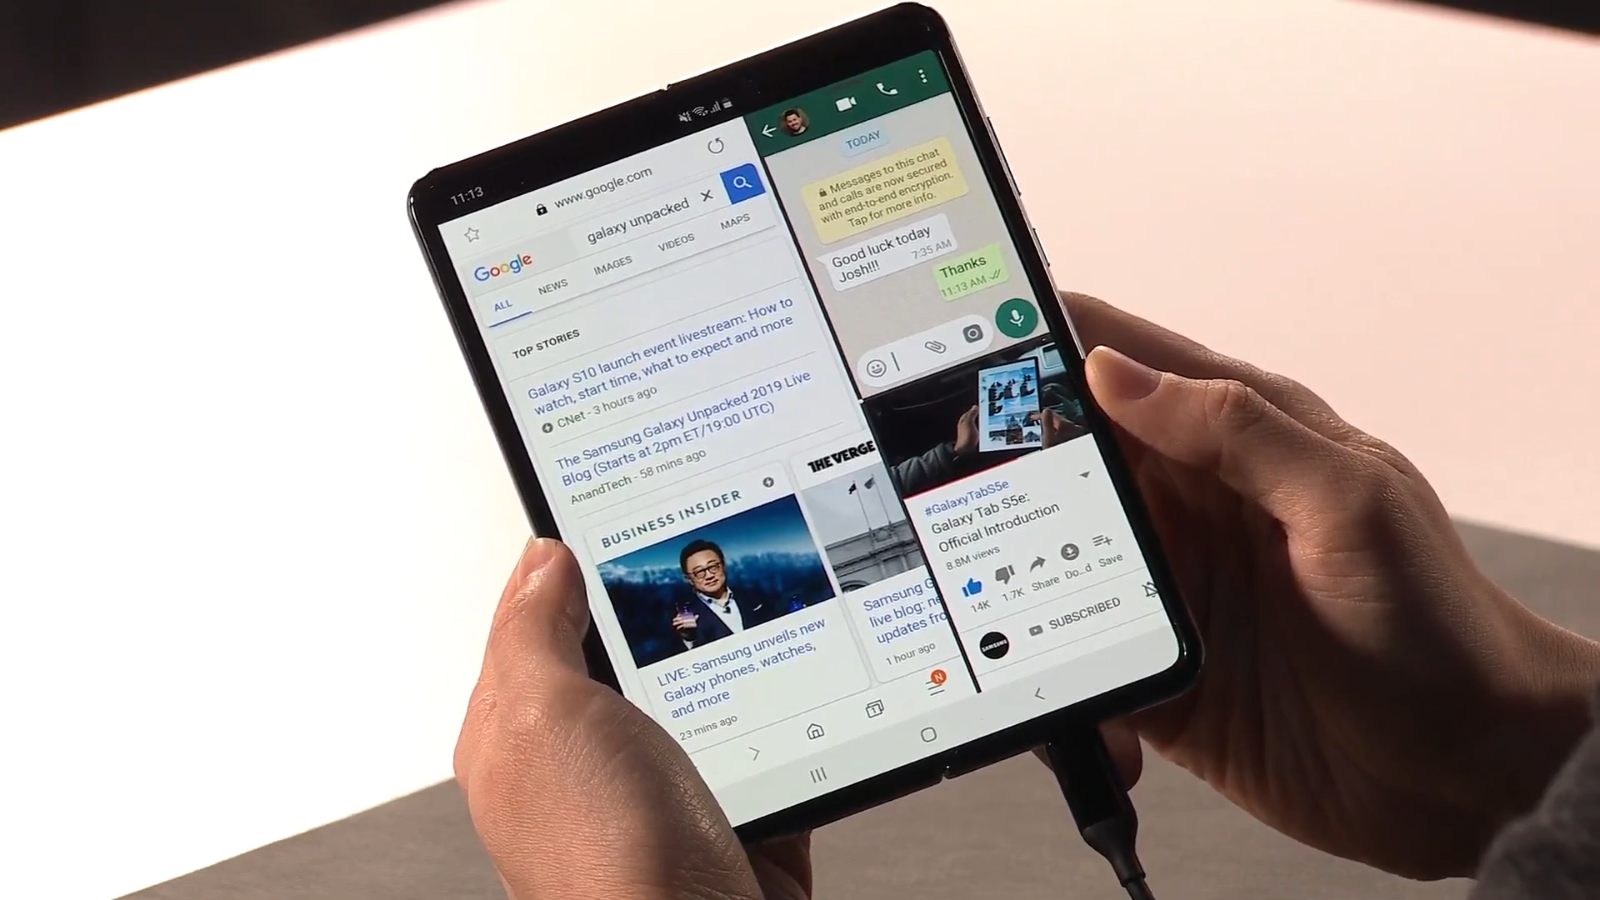 Samsung shows off three apps running at once on the Galaxy Fold